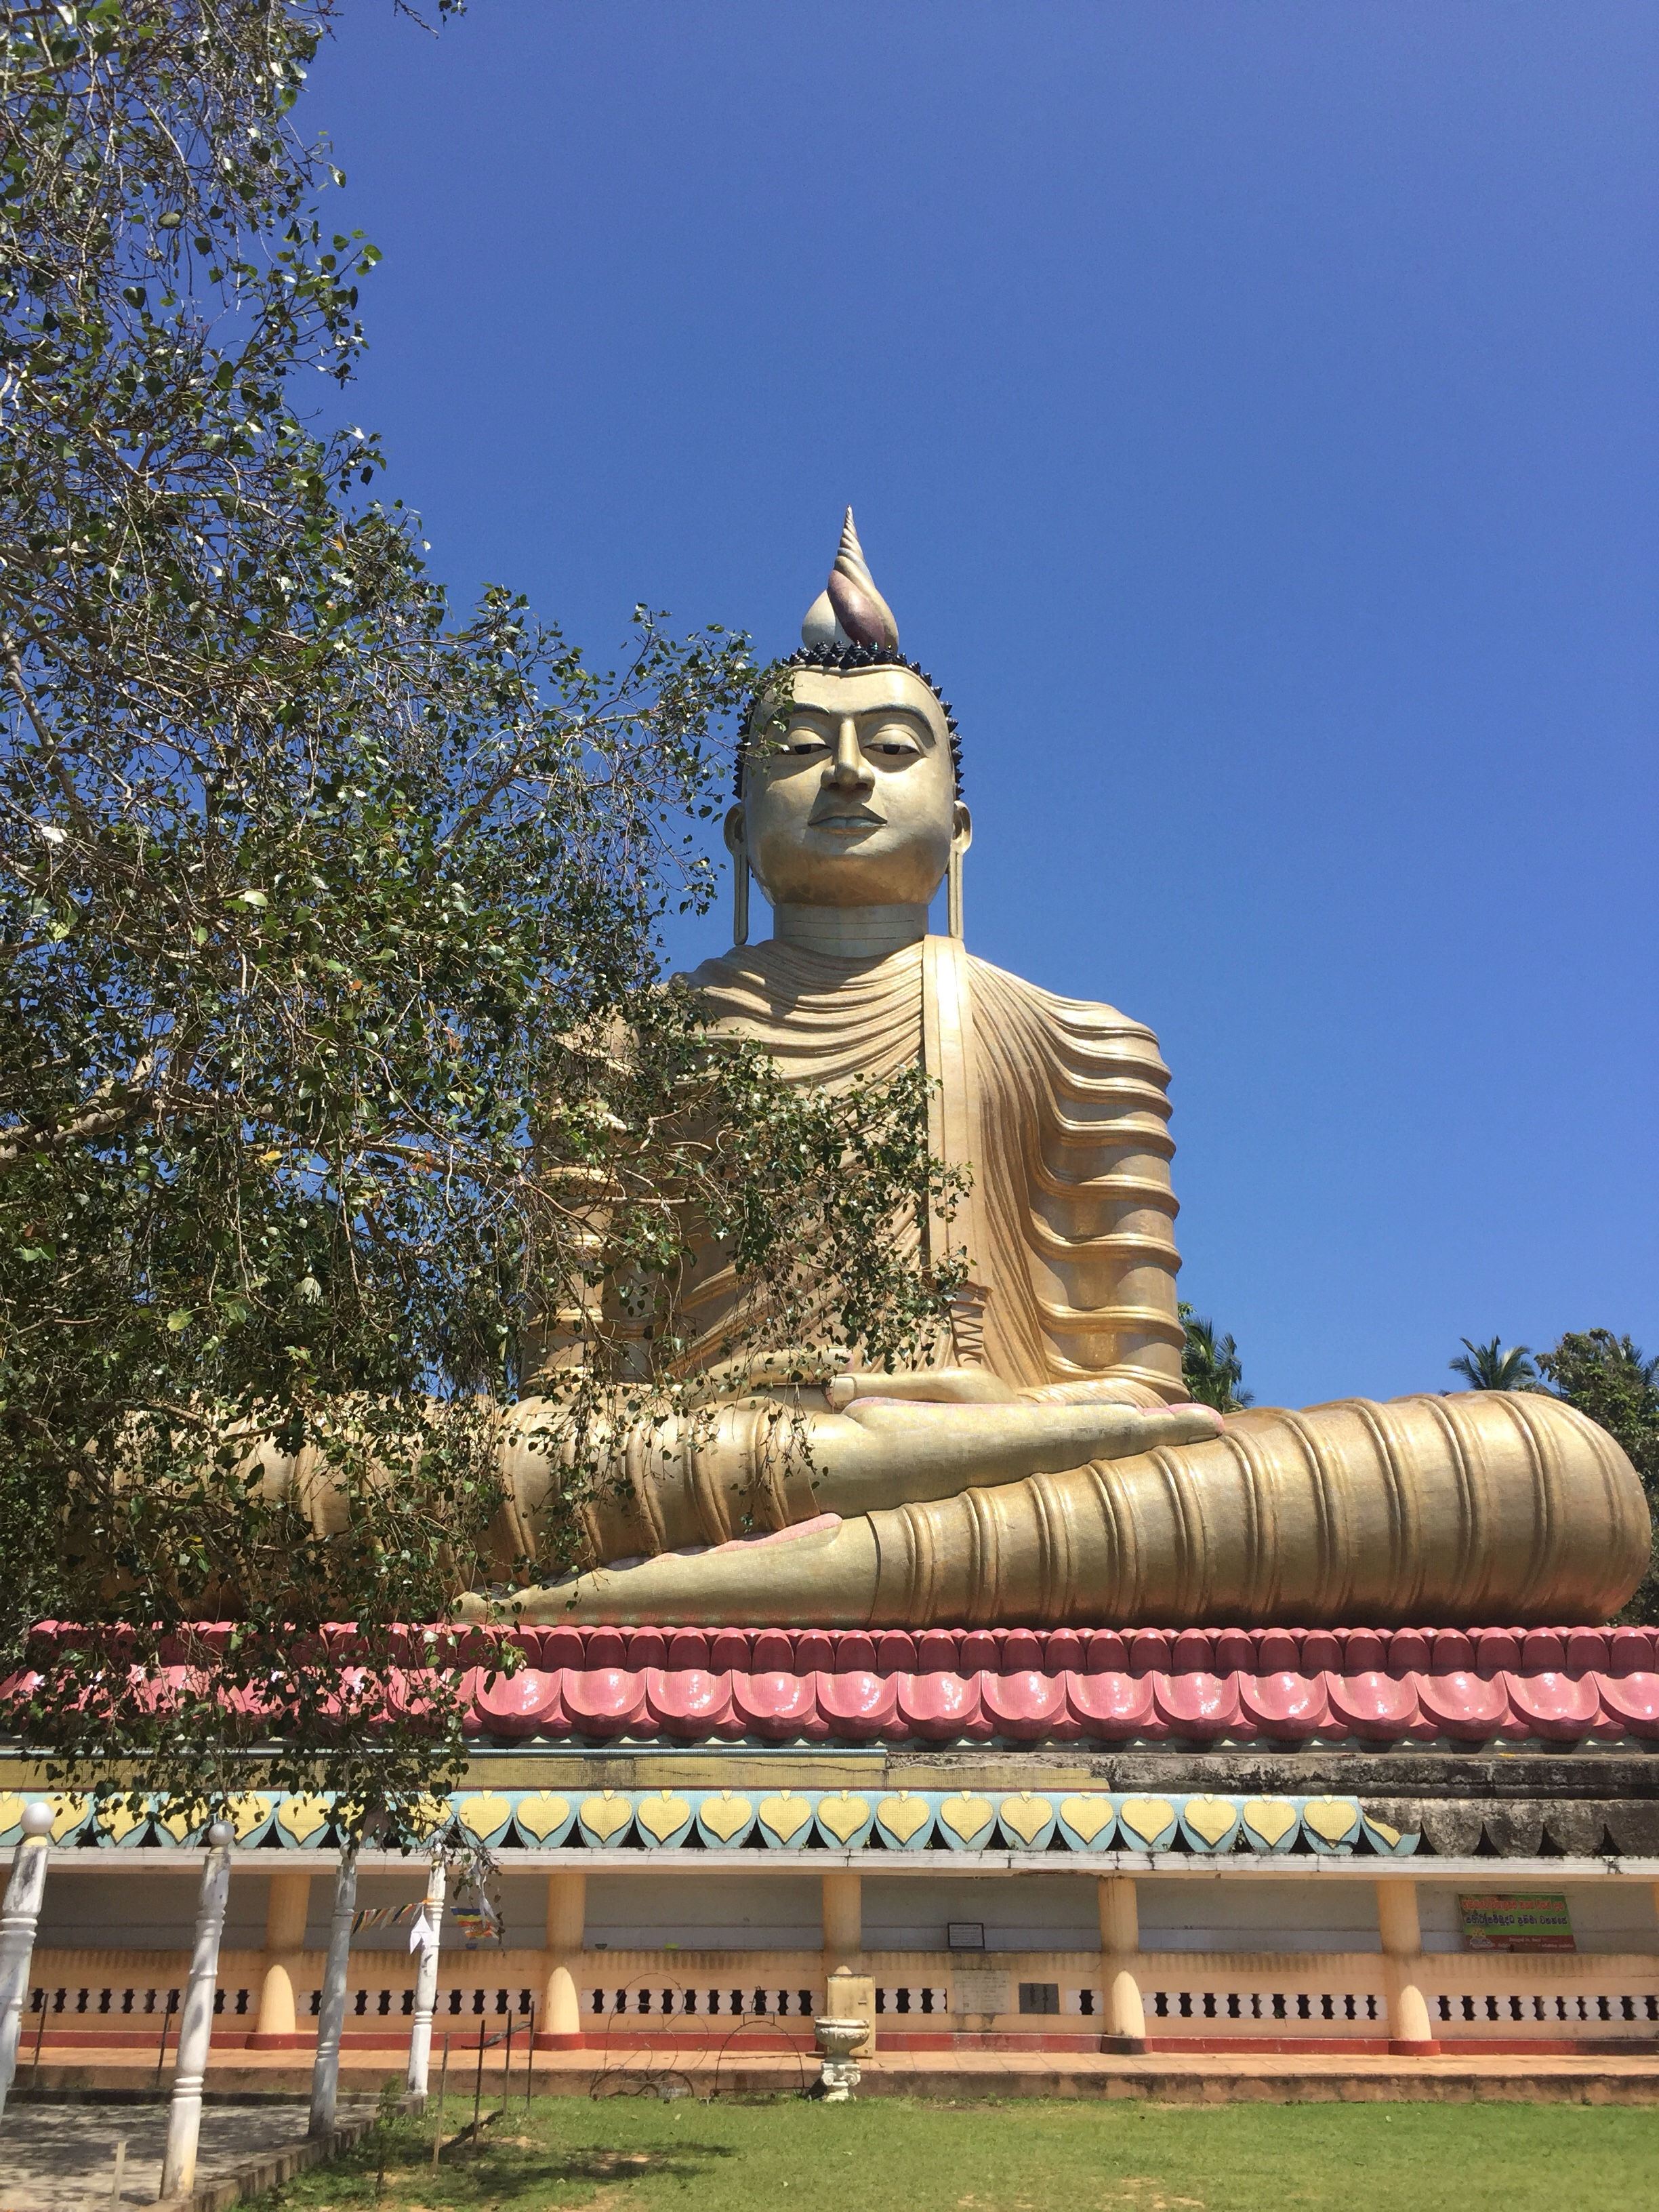 Tallest Buddha statue on the island 50 metres